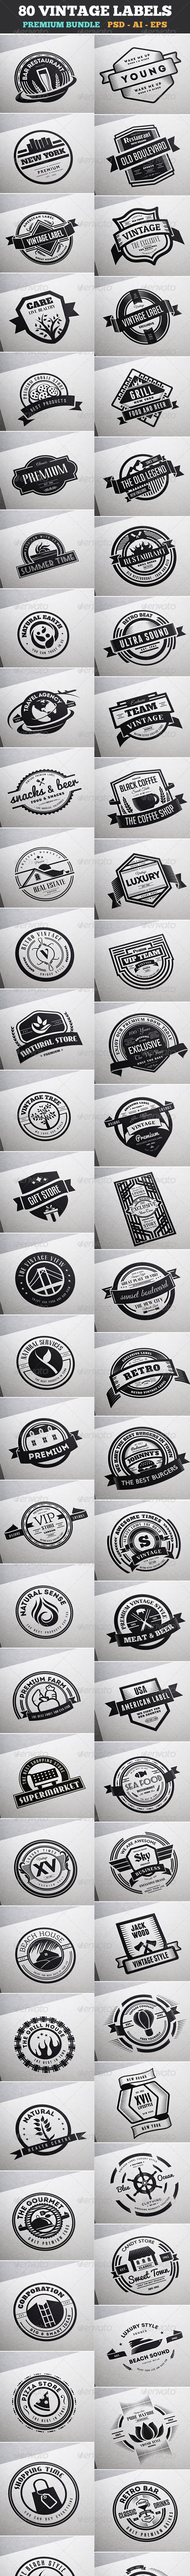 80 Vintage Labels & Badges Logos Bundle - Badges & Stickers Web Elements